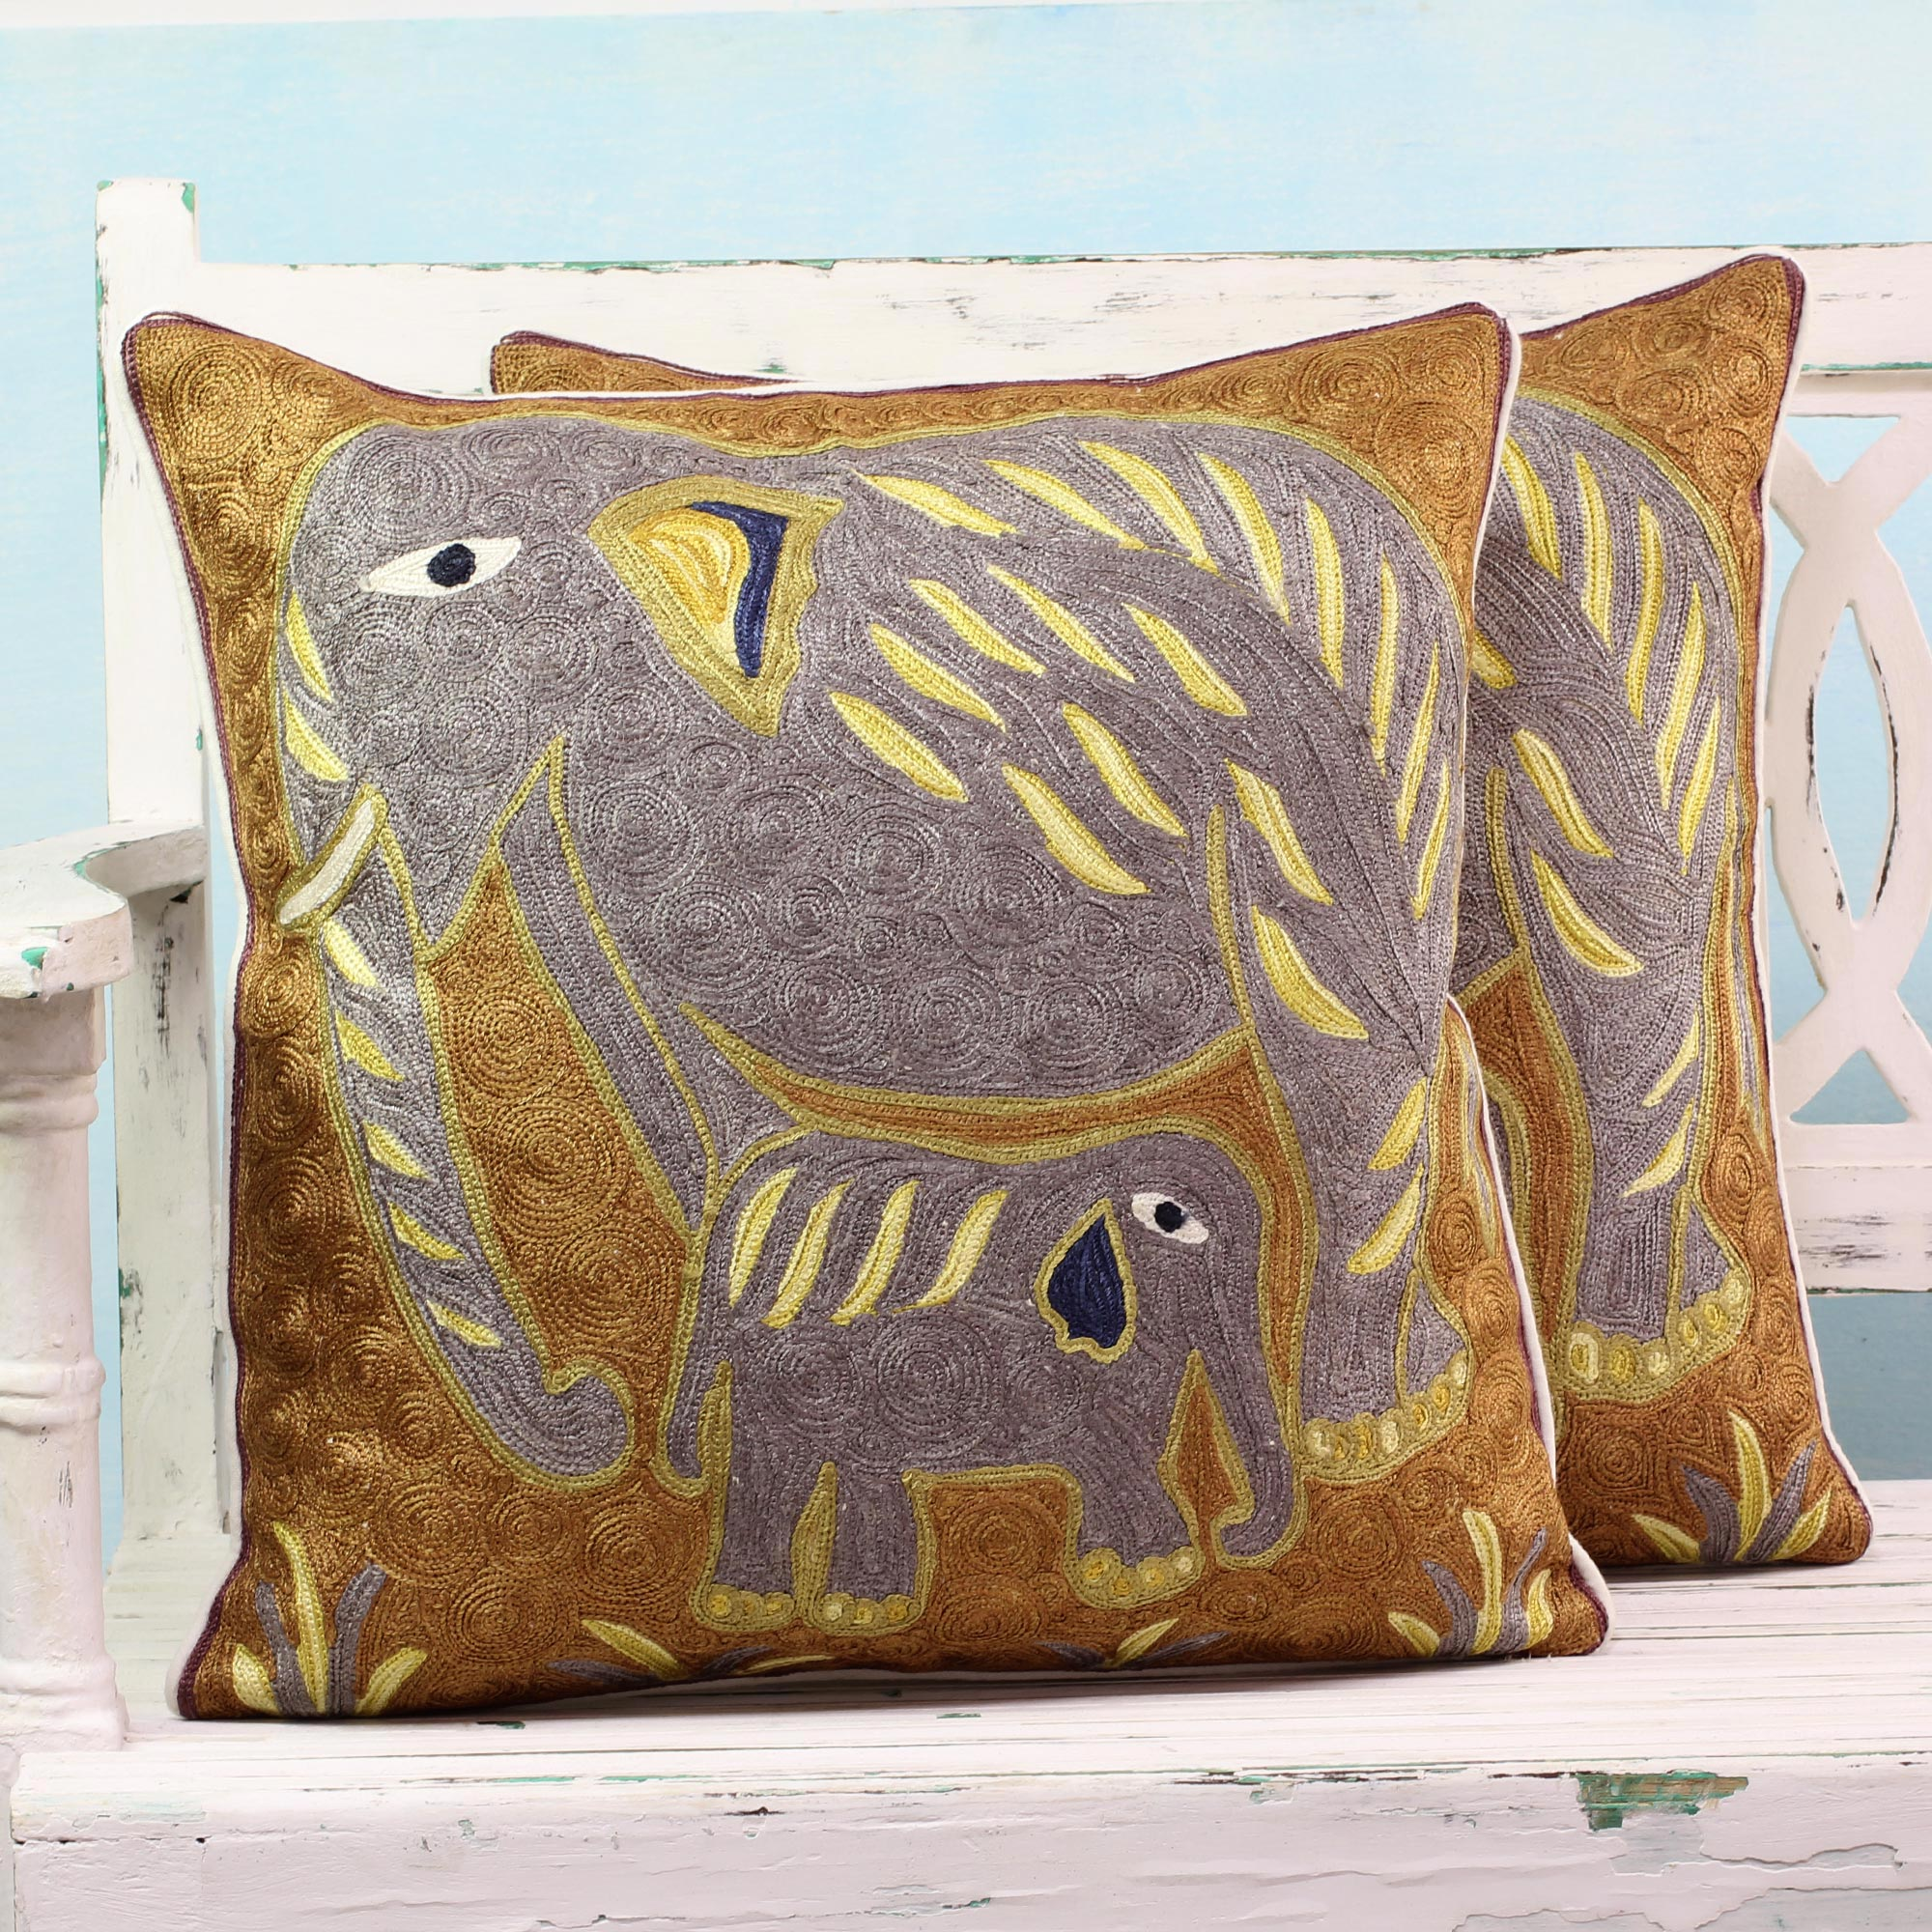 Cotton cushion covers Grey Indian Elephants pair animal themed